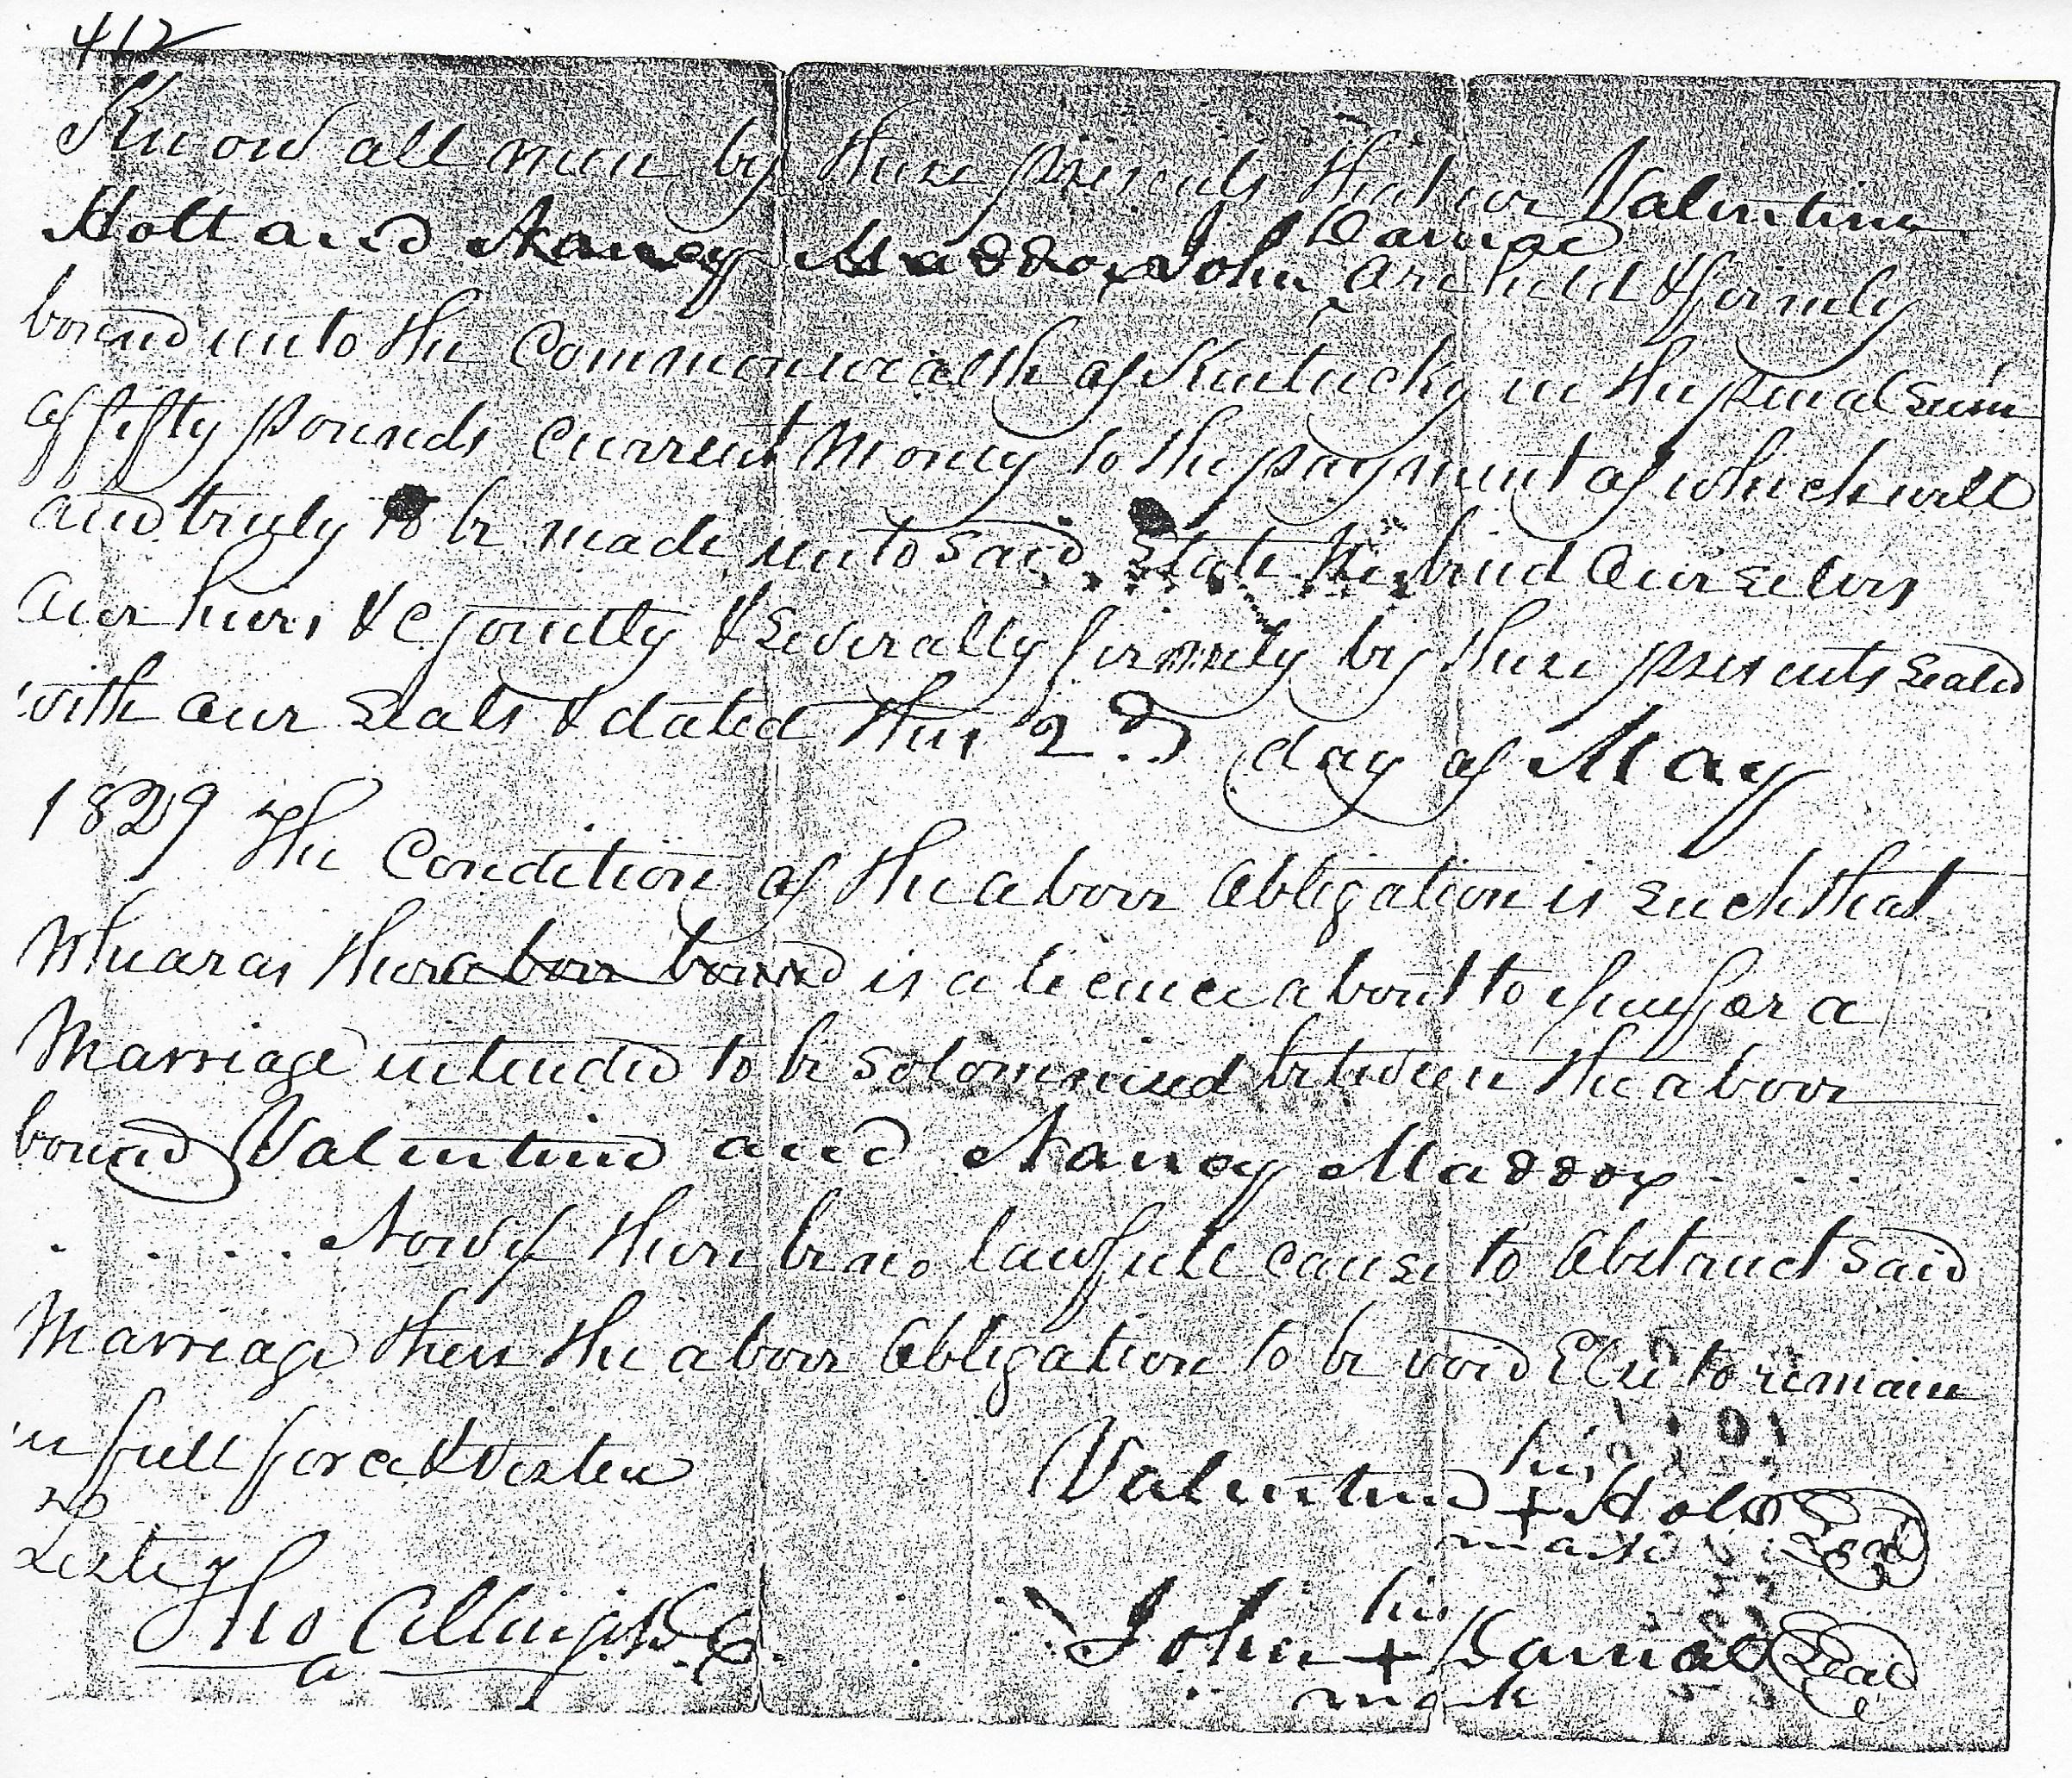 Maddox 1829 Marriage Bond And Consents